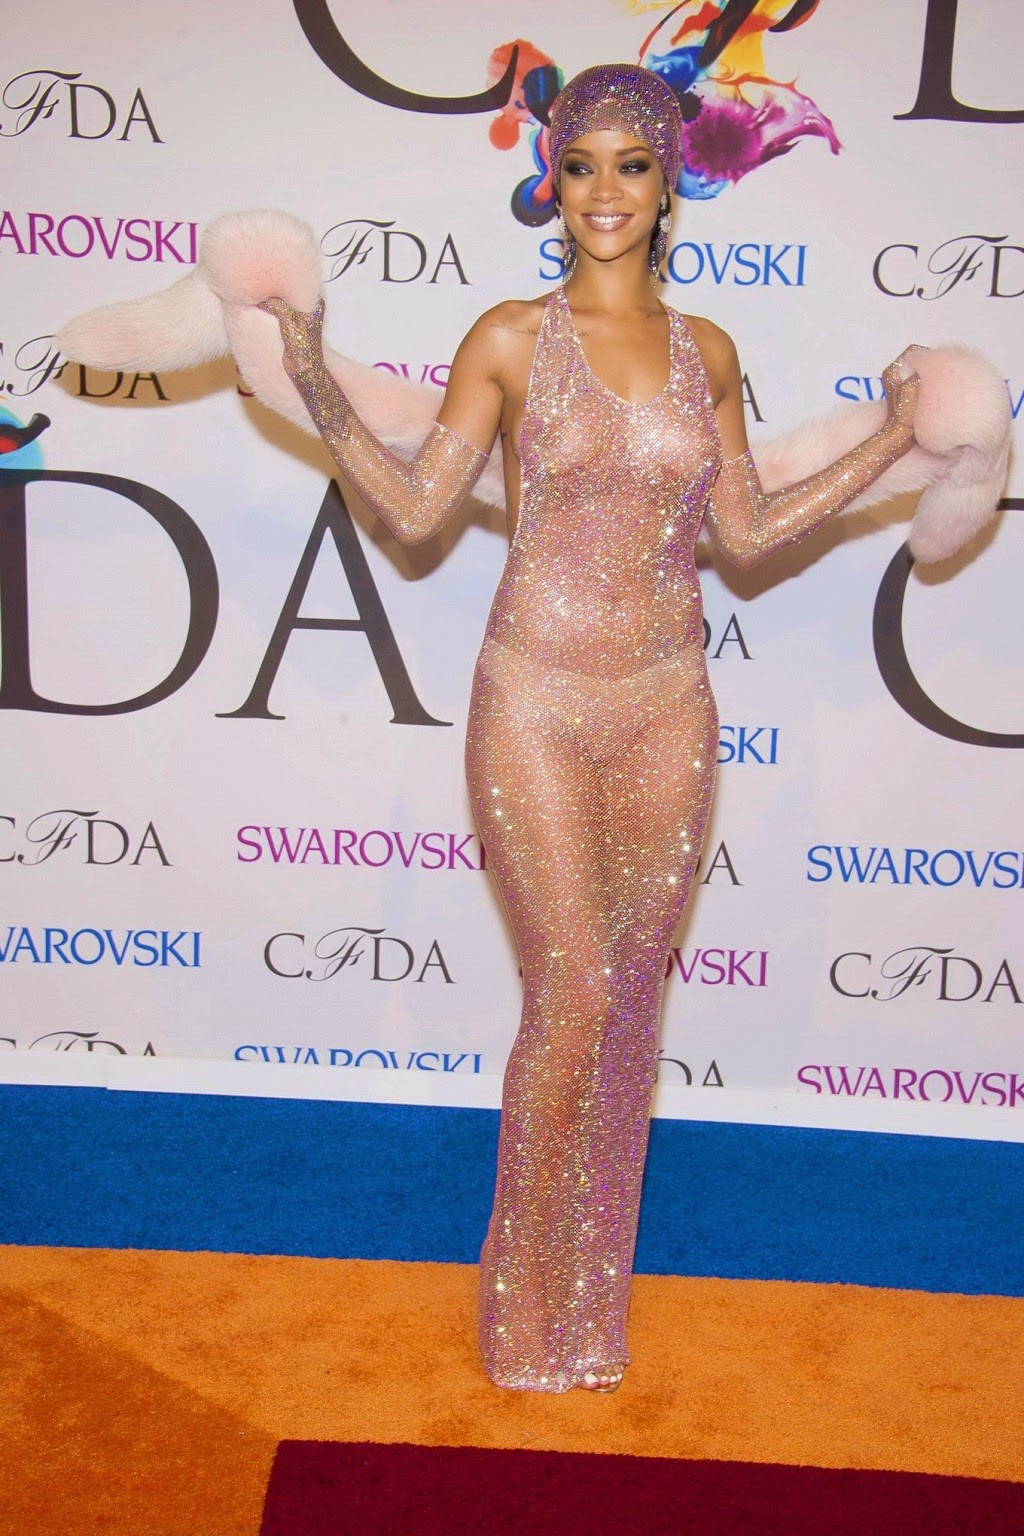 Rihanna shows off her bare boobs and ass in a seethru dress at 2014 CFDA Awards 7